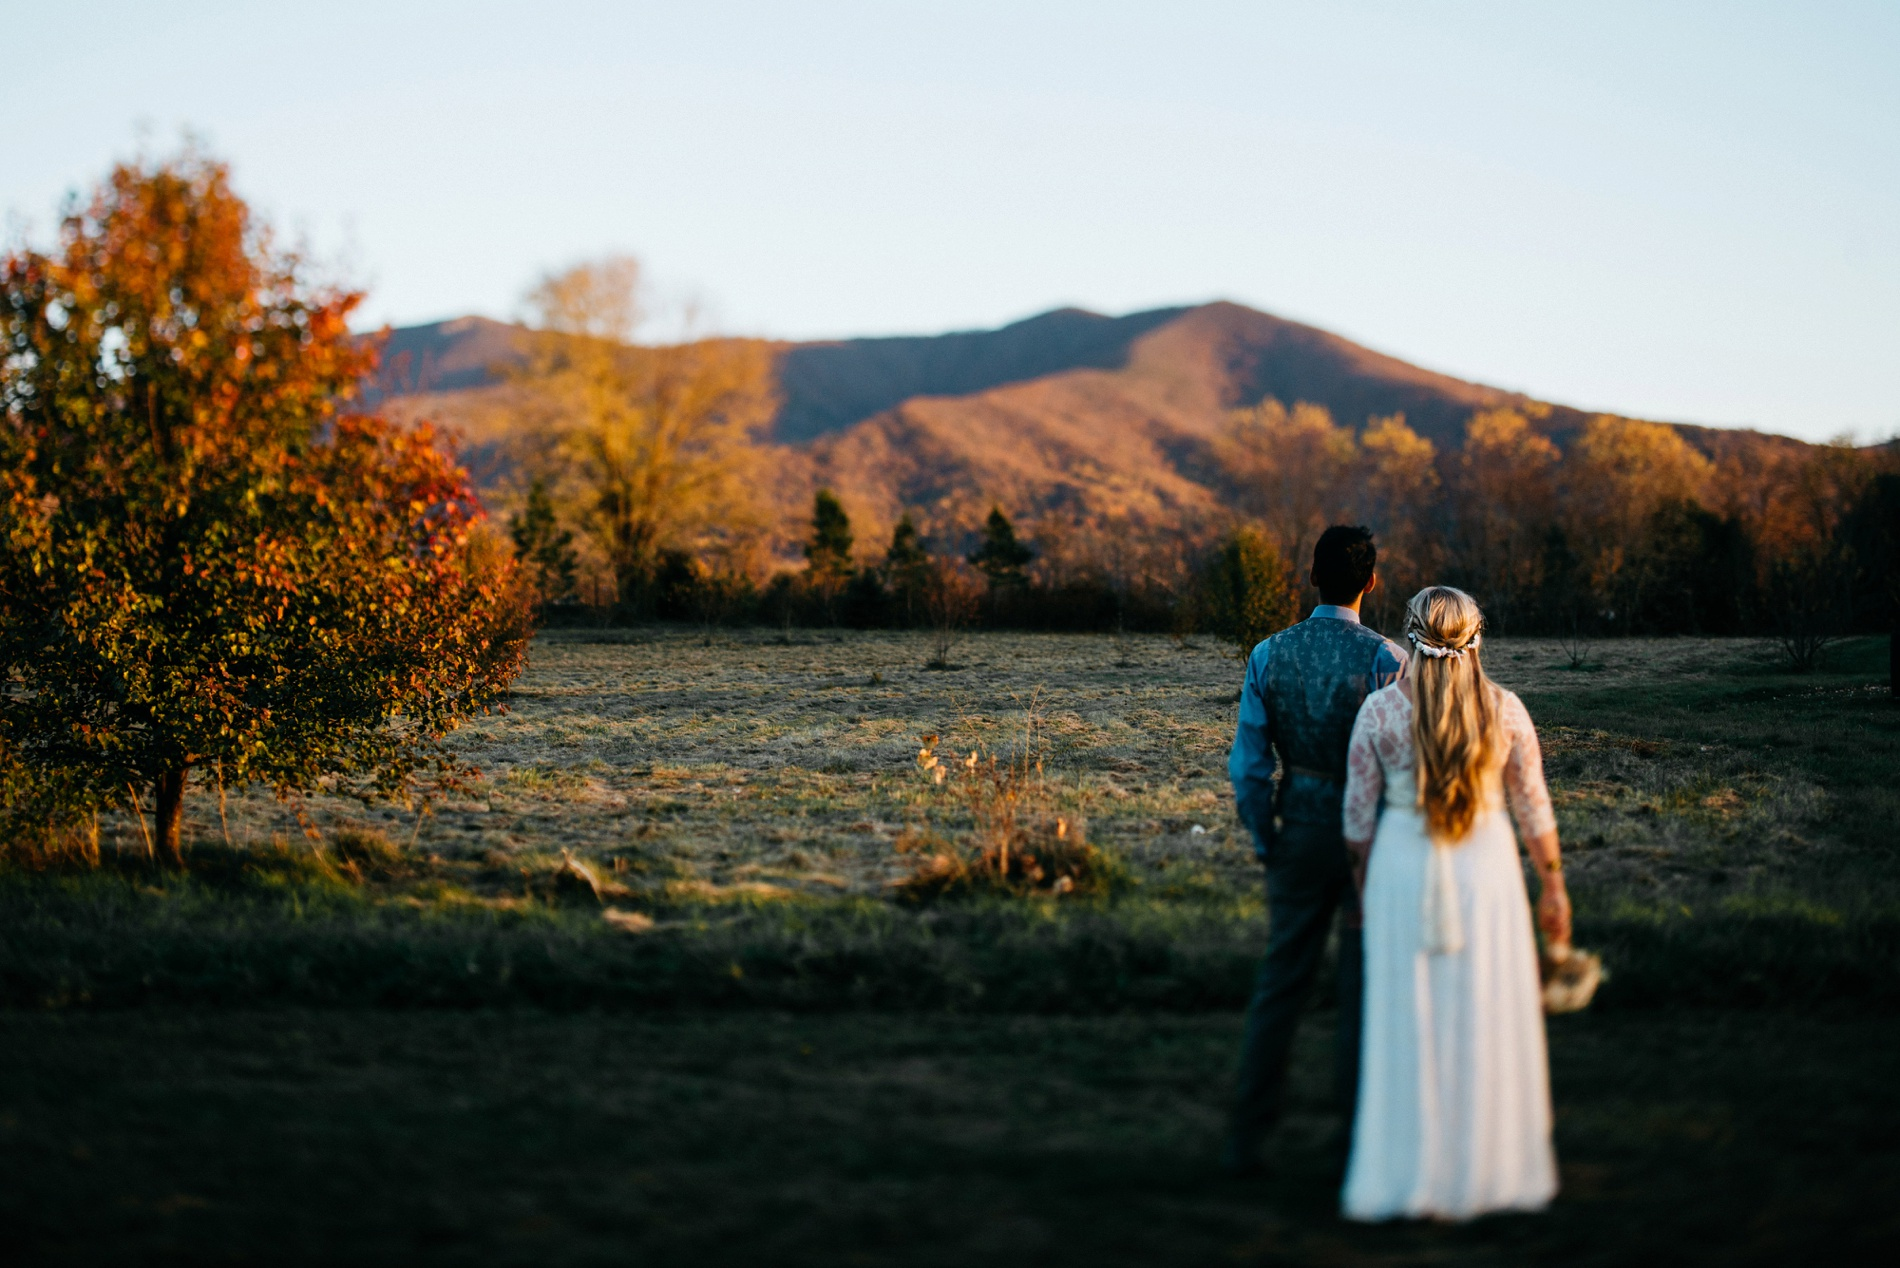 wedding at khimaira farm in luray va